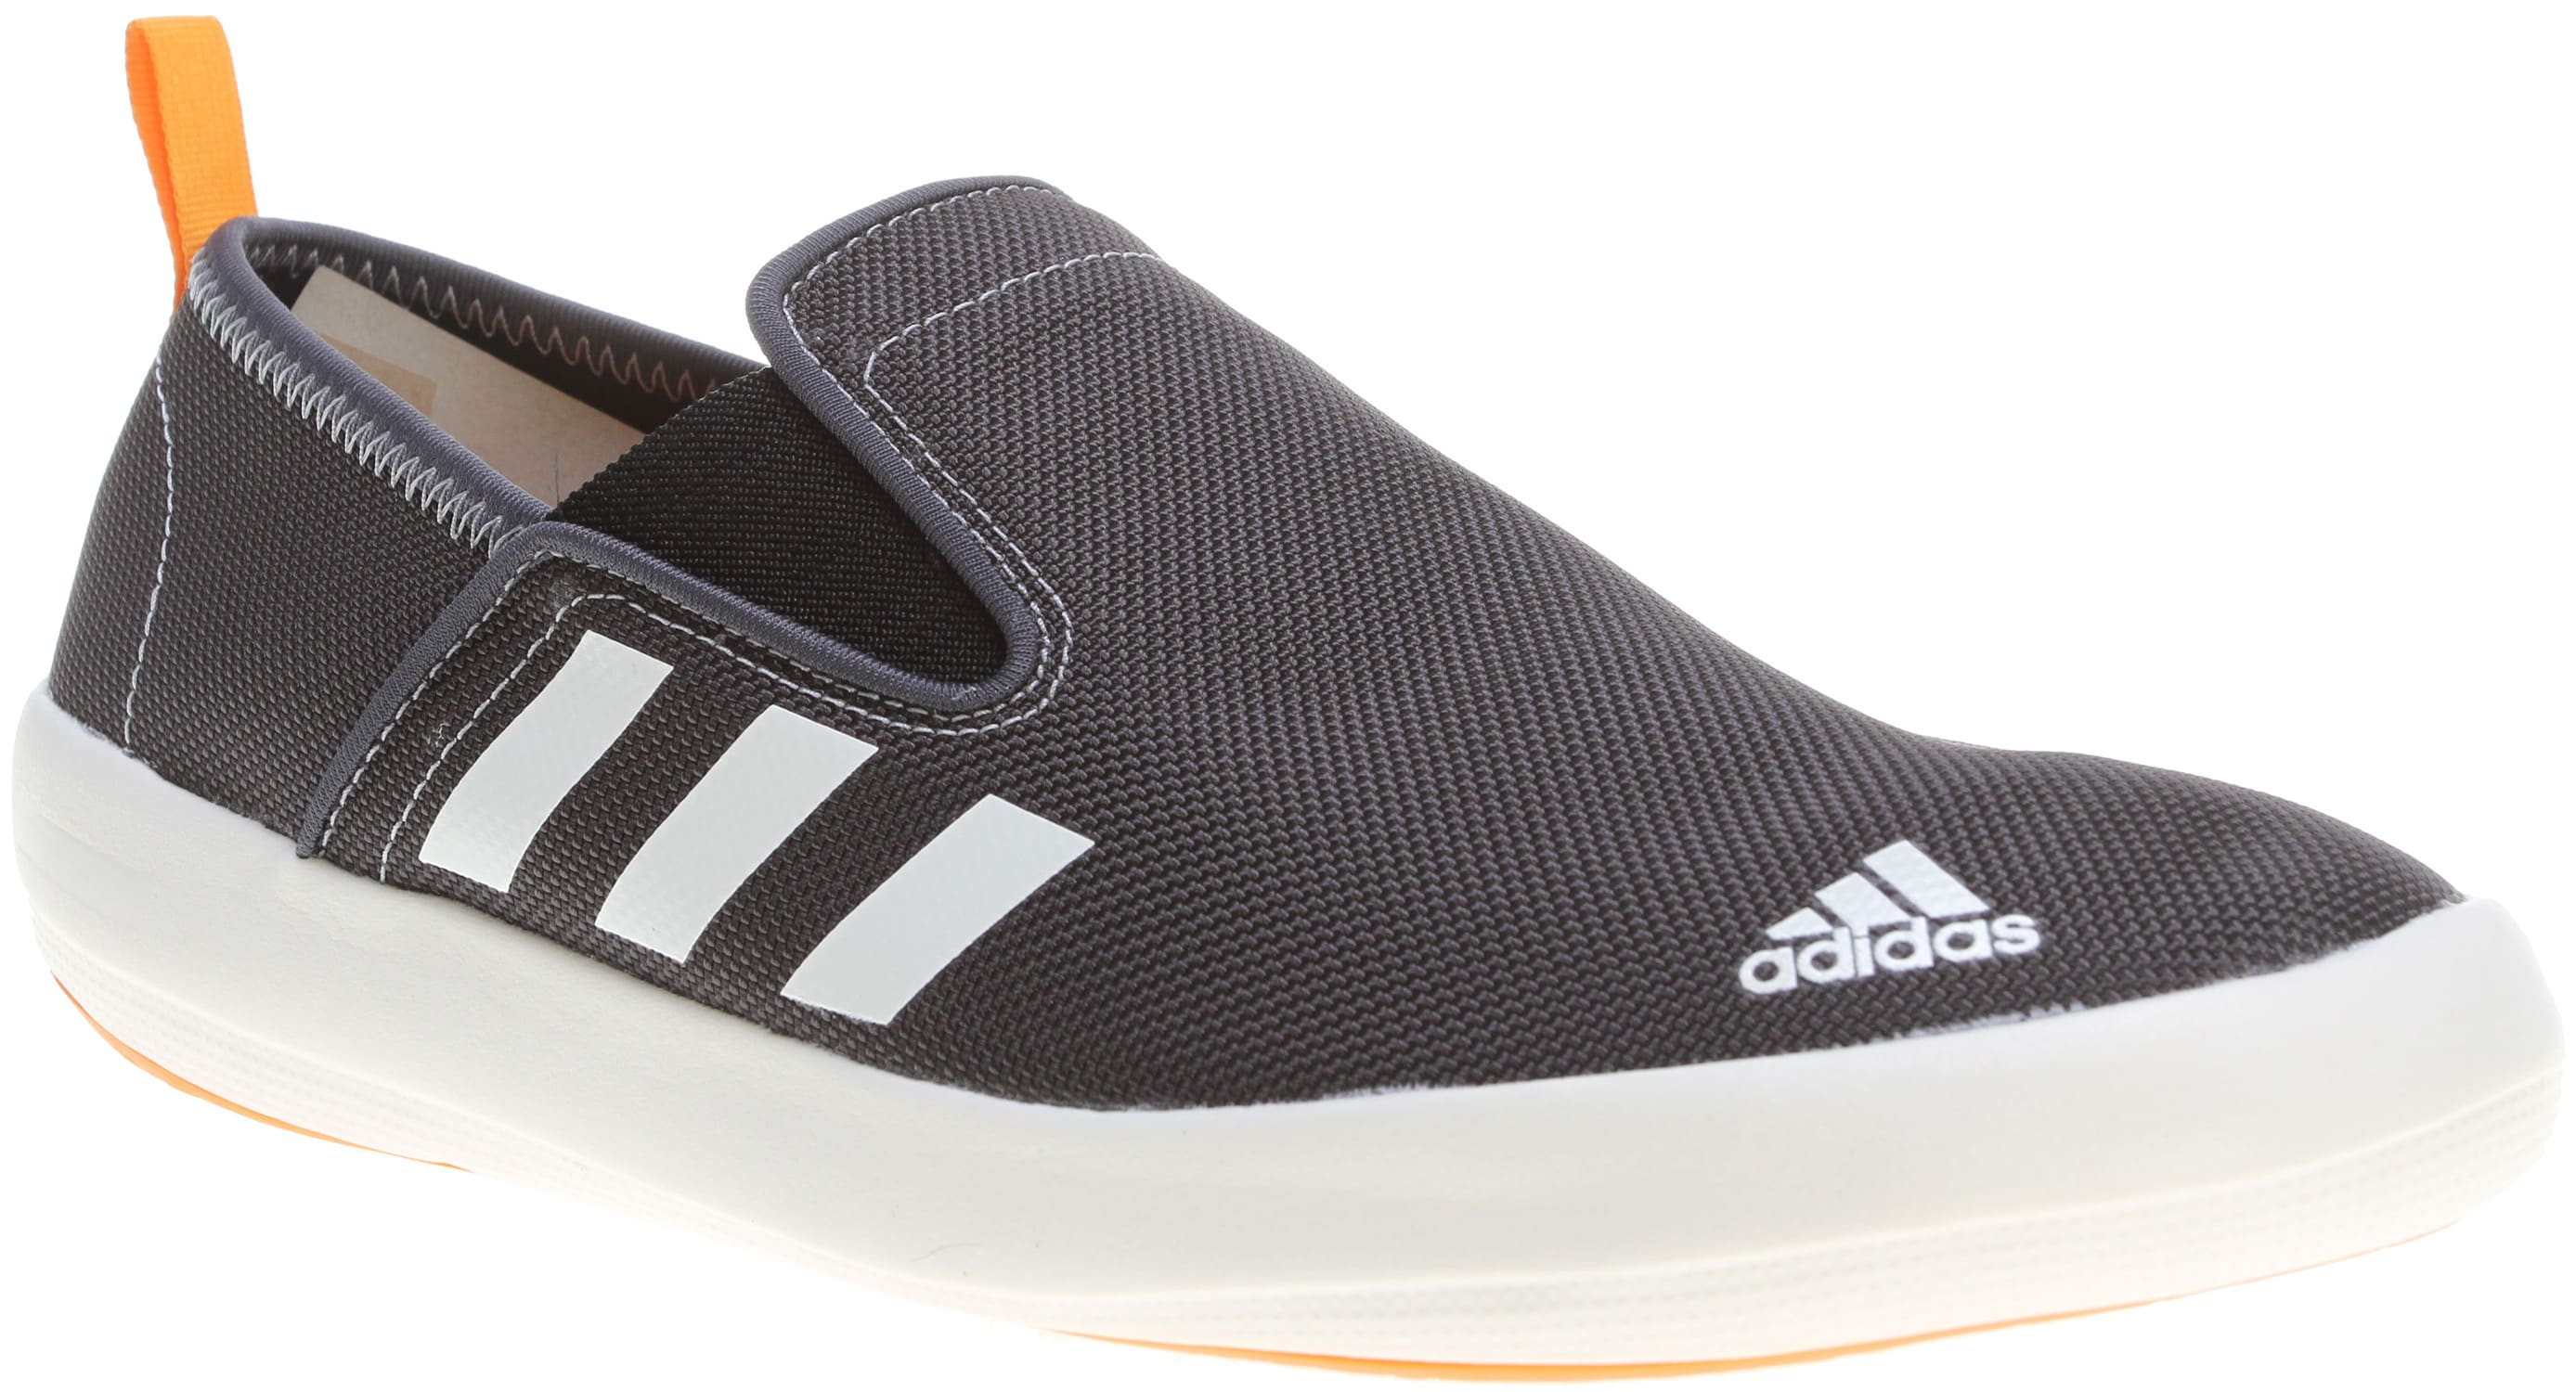 on sale adidas boat slip on dlx water shoes up to 50 off. Black Bedroom Furniture Sets. Home Design Ideas